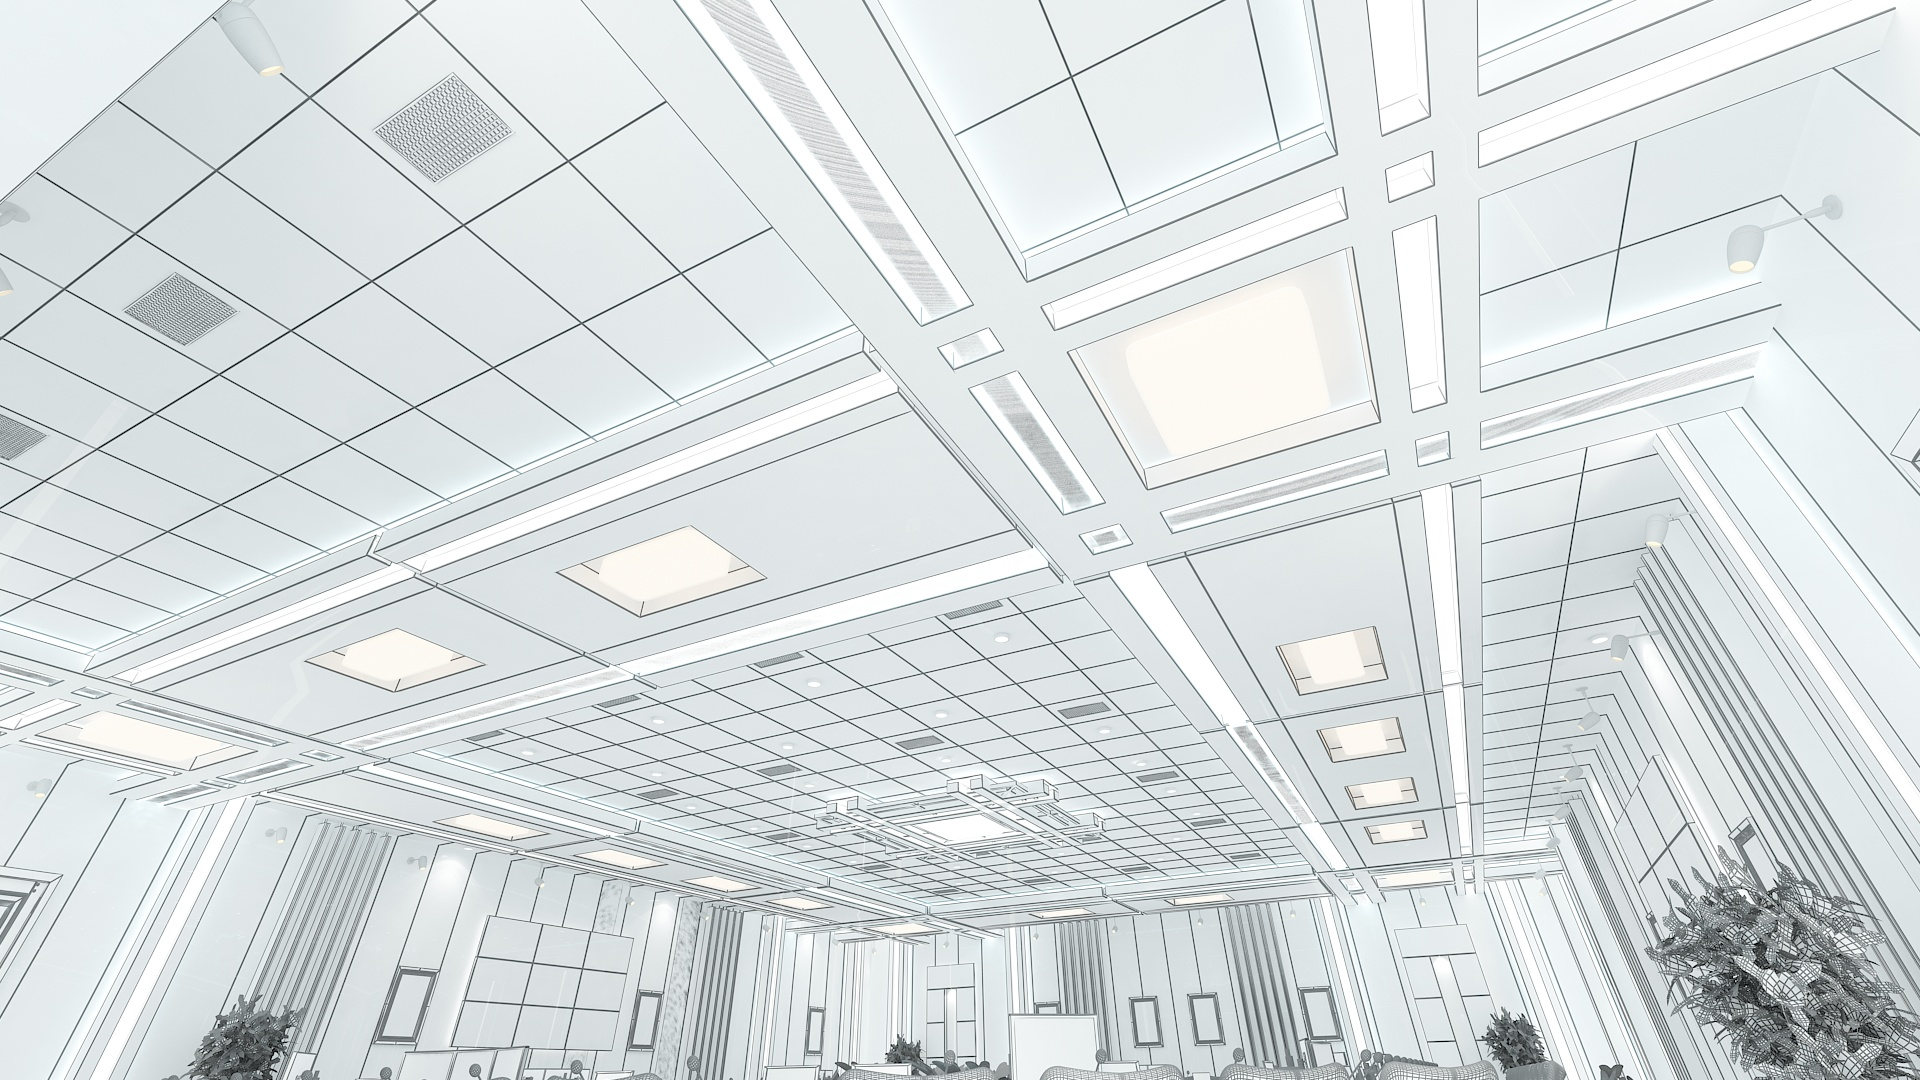 meeting room 1 3d model 3ds max dxf dwg 288125